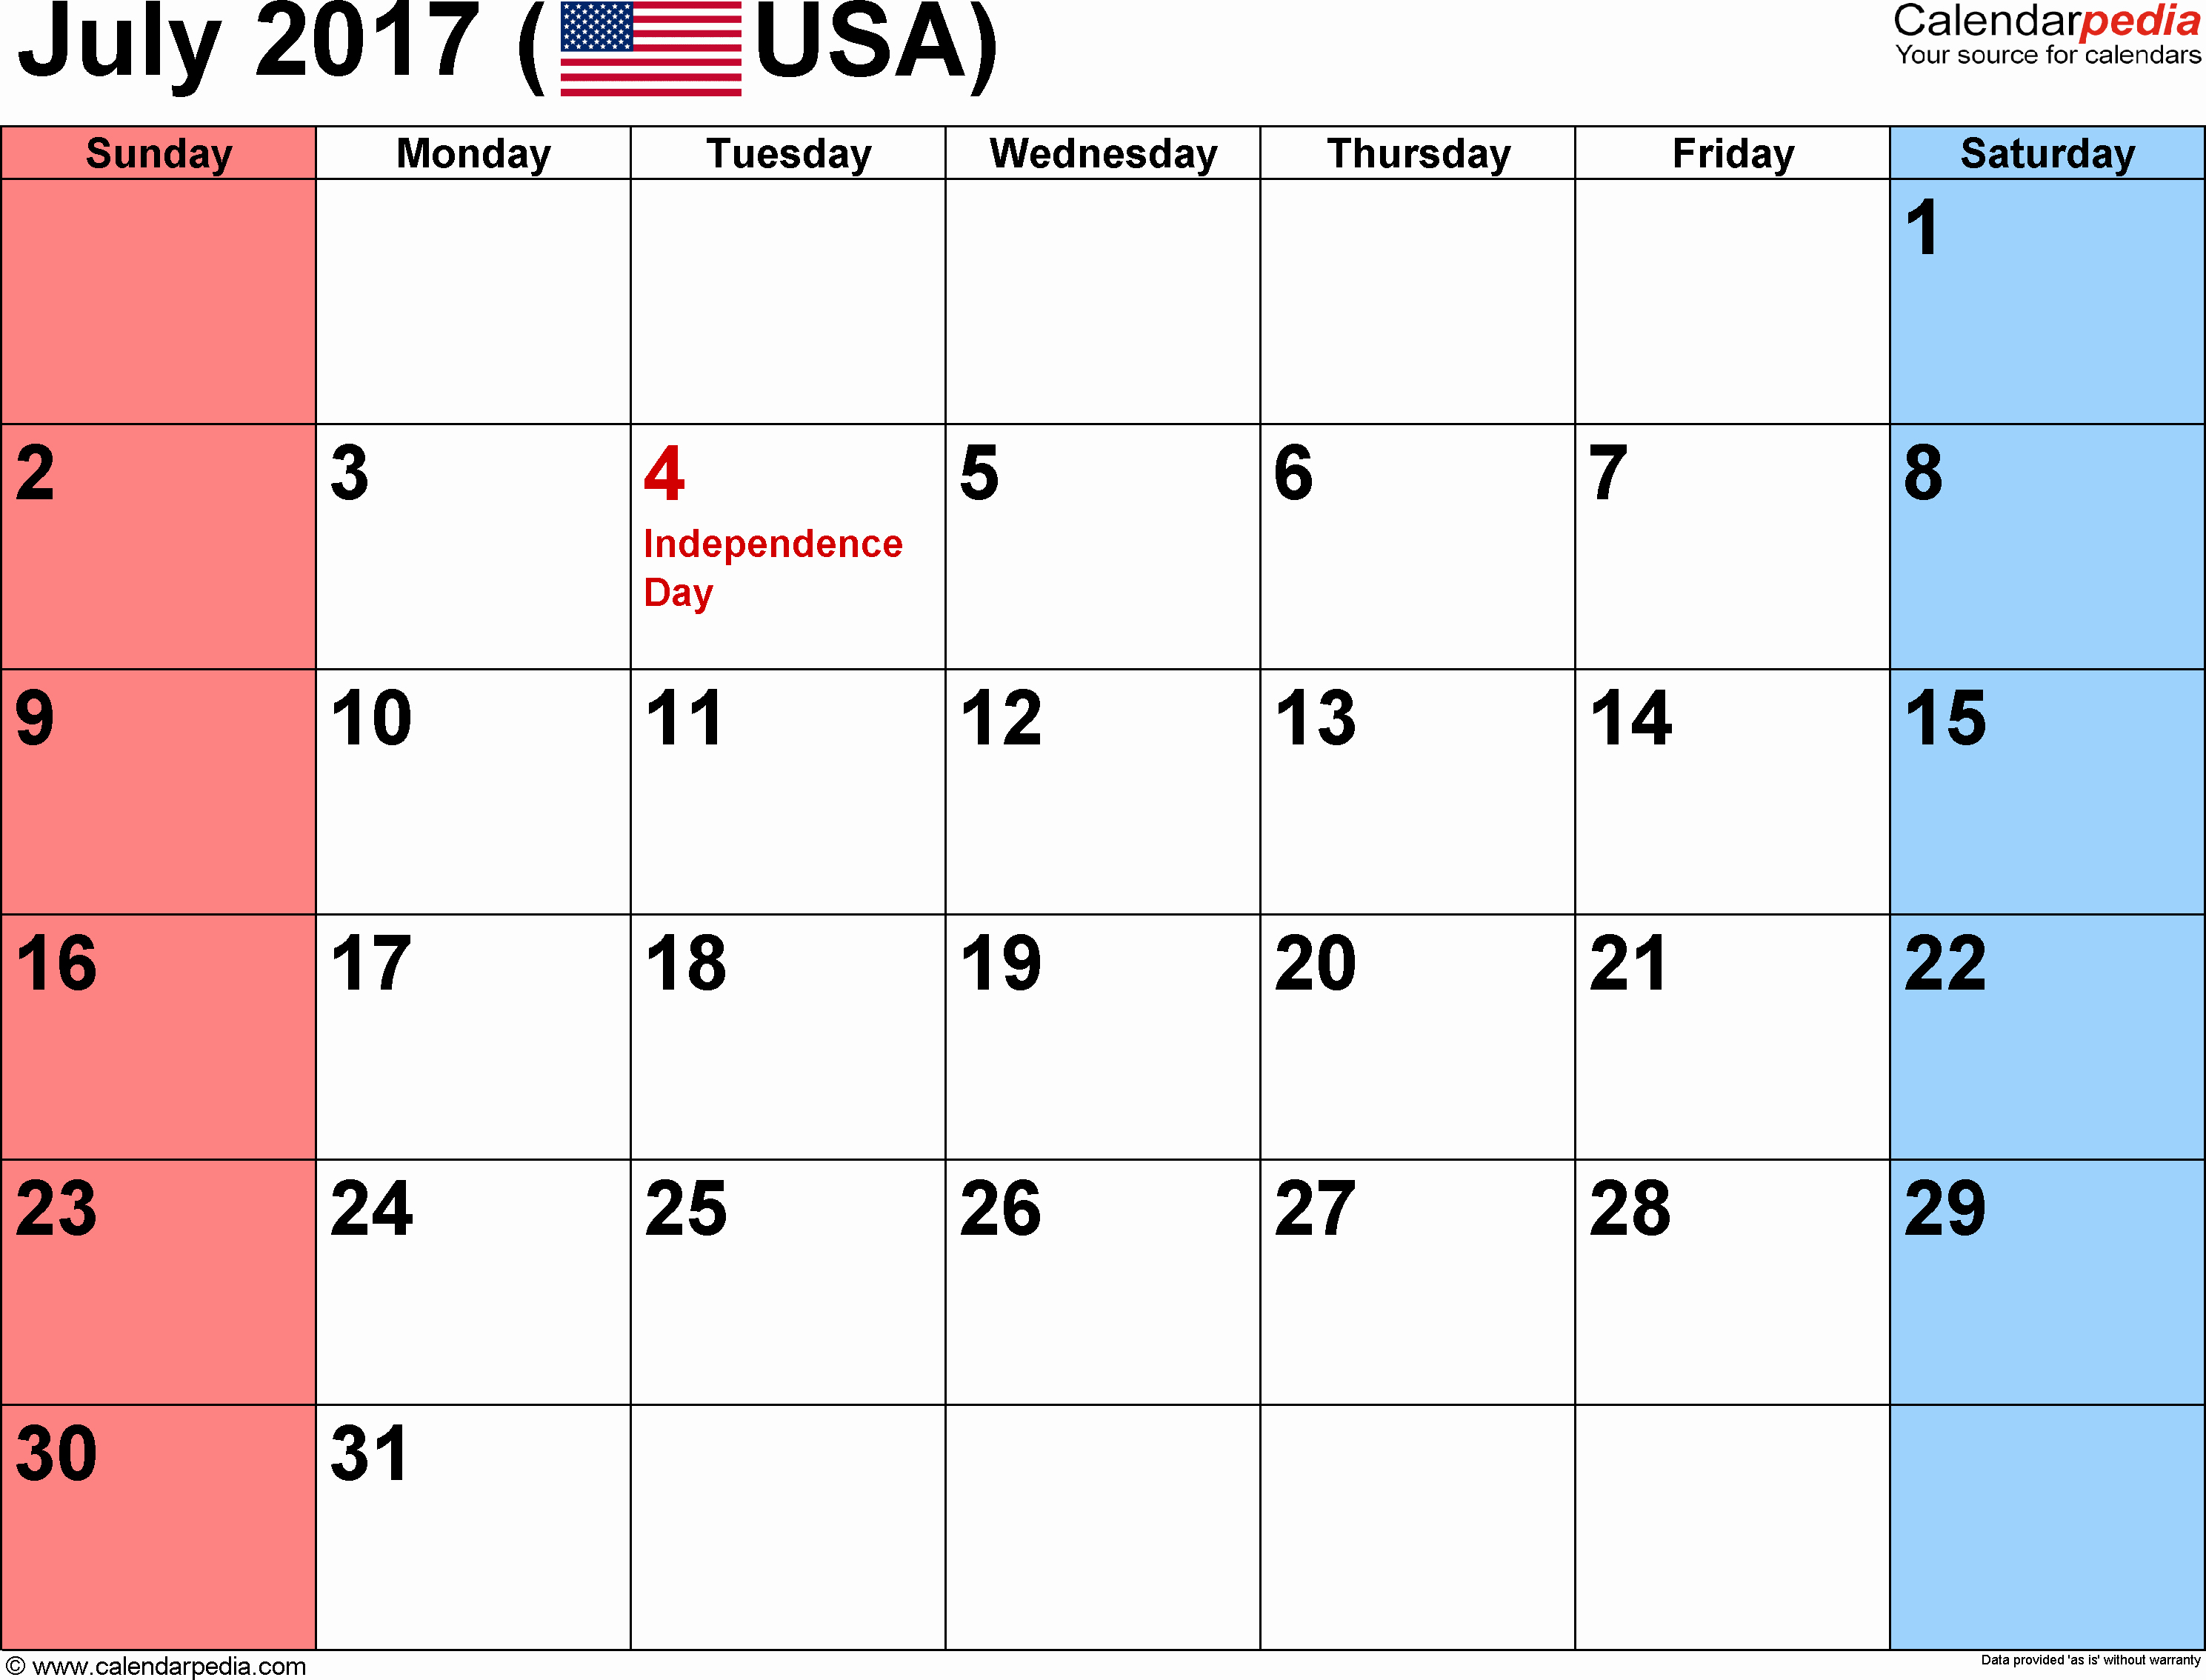 2017 Calendar Month by Month Best Of July 2017 Calendars for Word Excel & Pdf